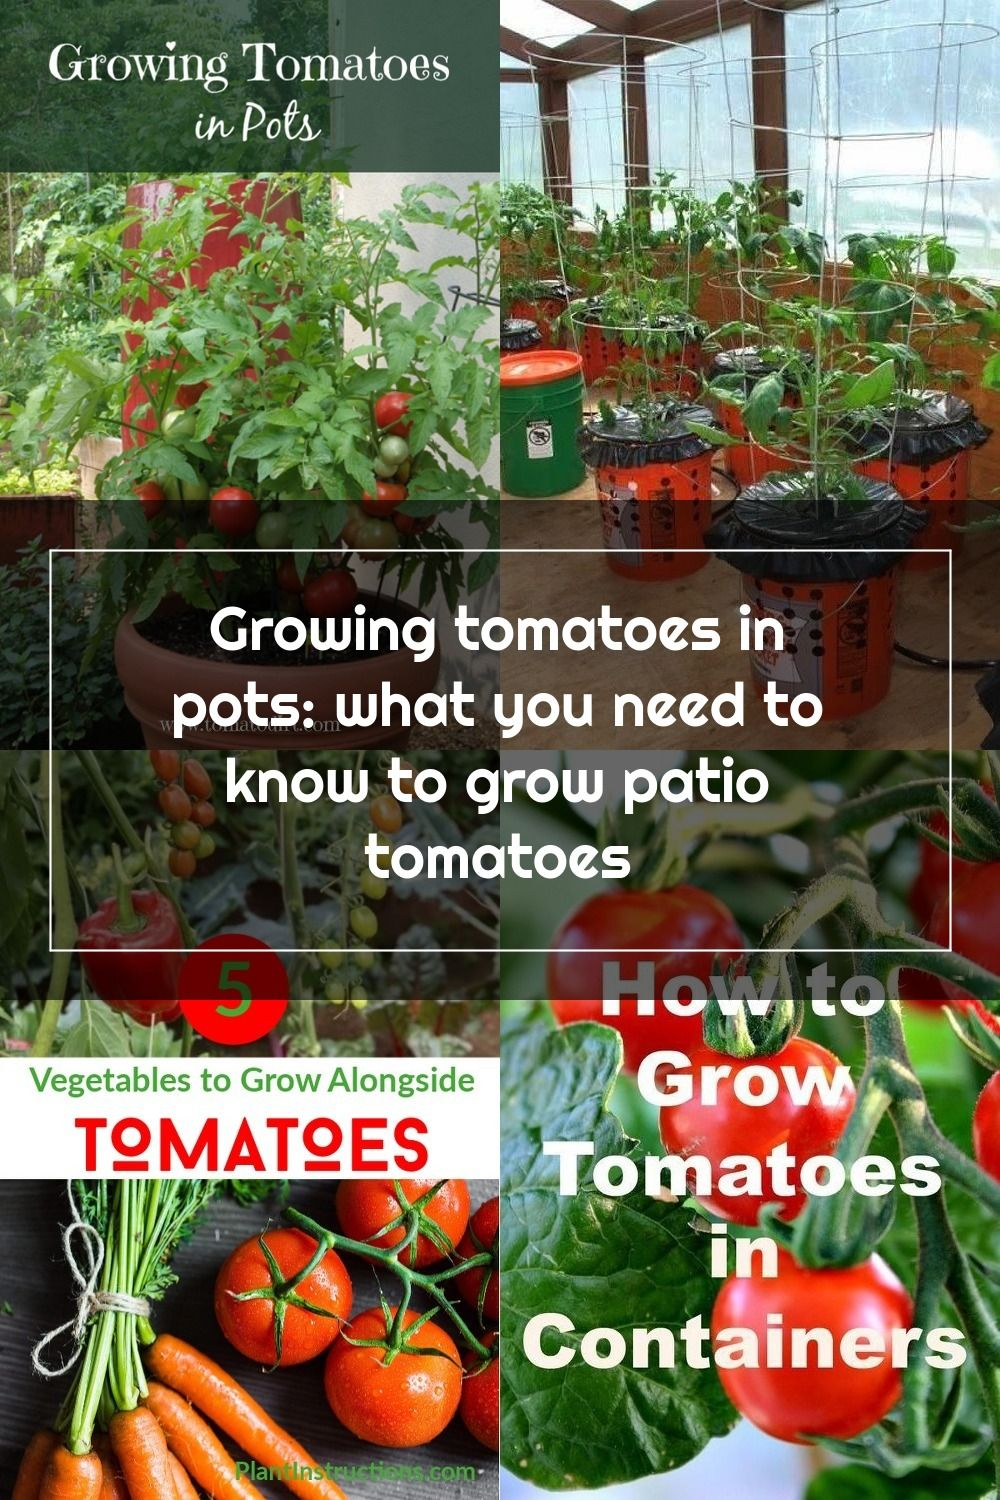 Growing Tomatoes In Pots The Basics About Container Tomatoes With Tomato Dirt Growingtomatoes In 2020 Growing Vegetables Patio Tomatoes Growing Tomatoes